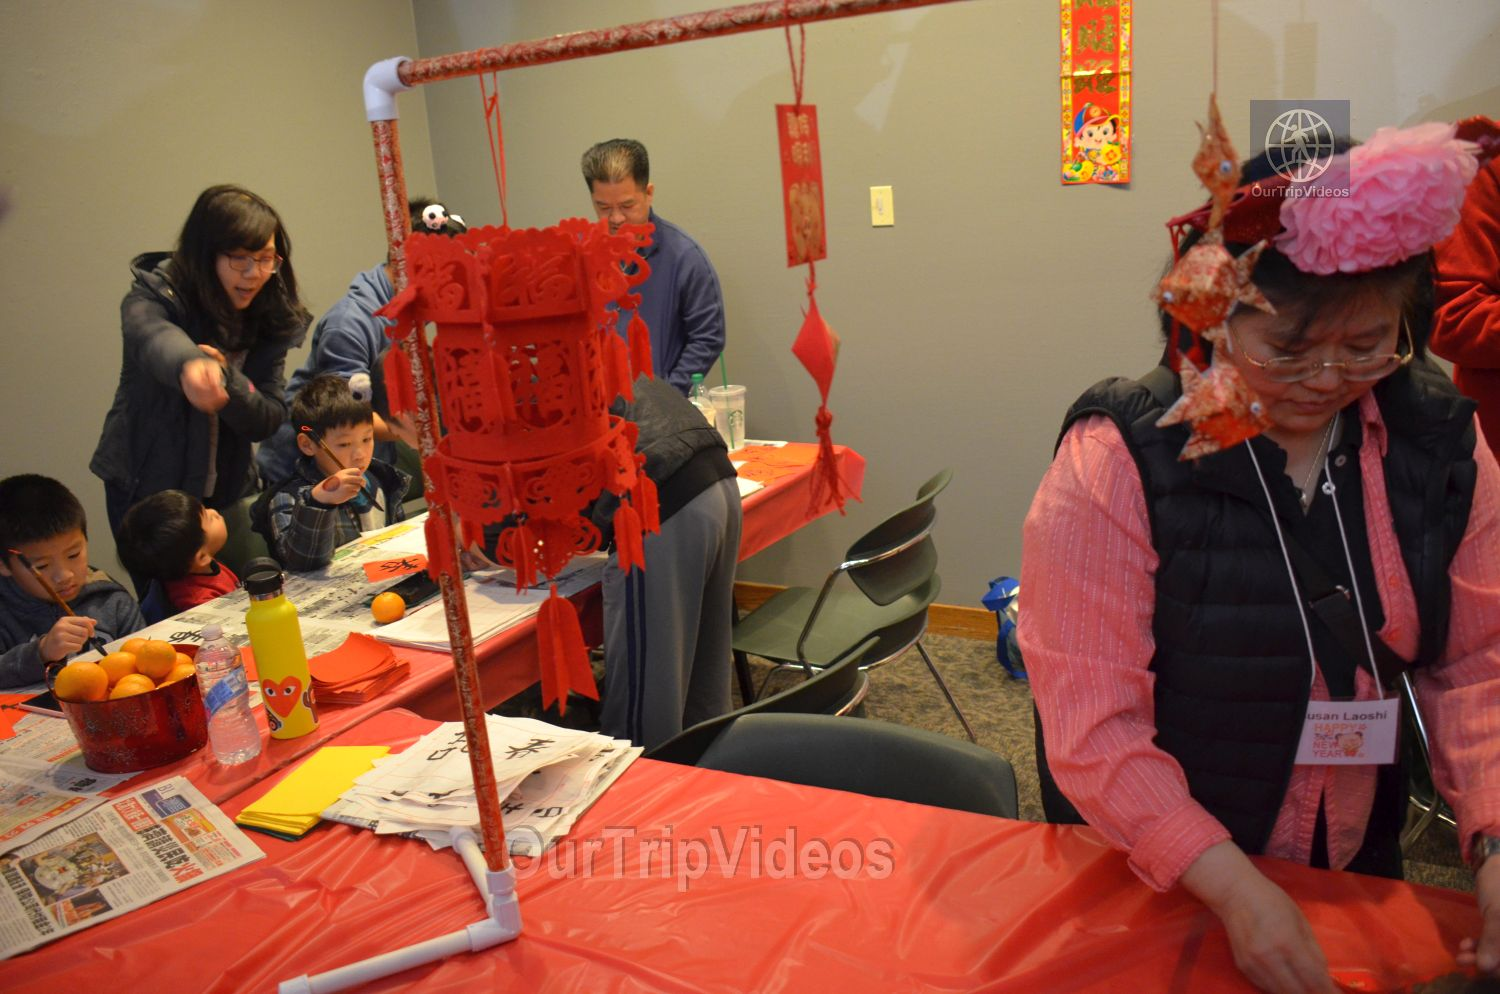 Chinese Lunar New Year Celebration, Milpitas, CA, USA - Picture 5 of 25